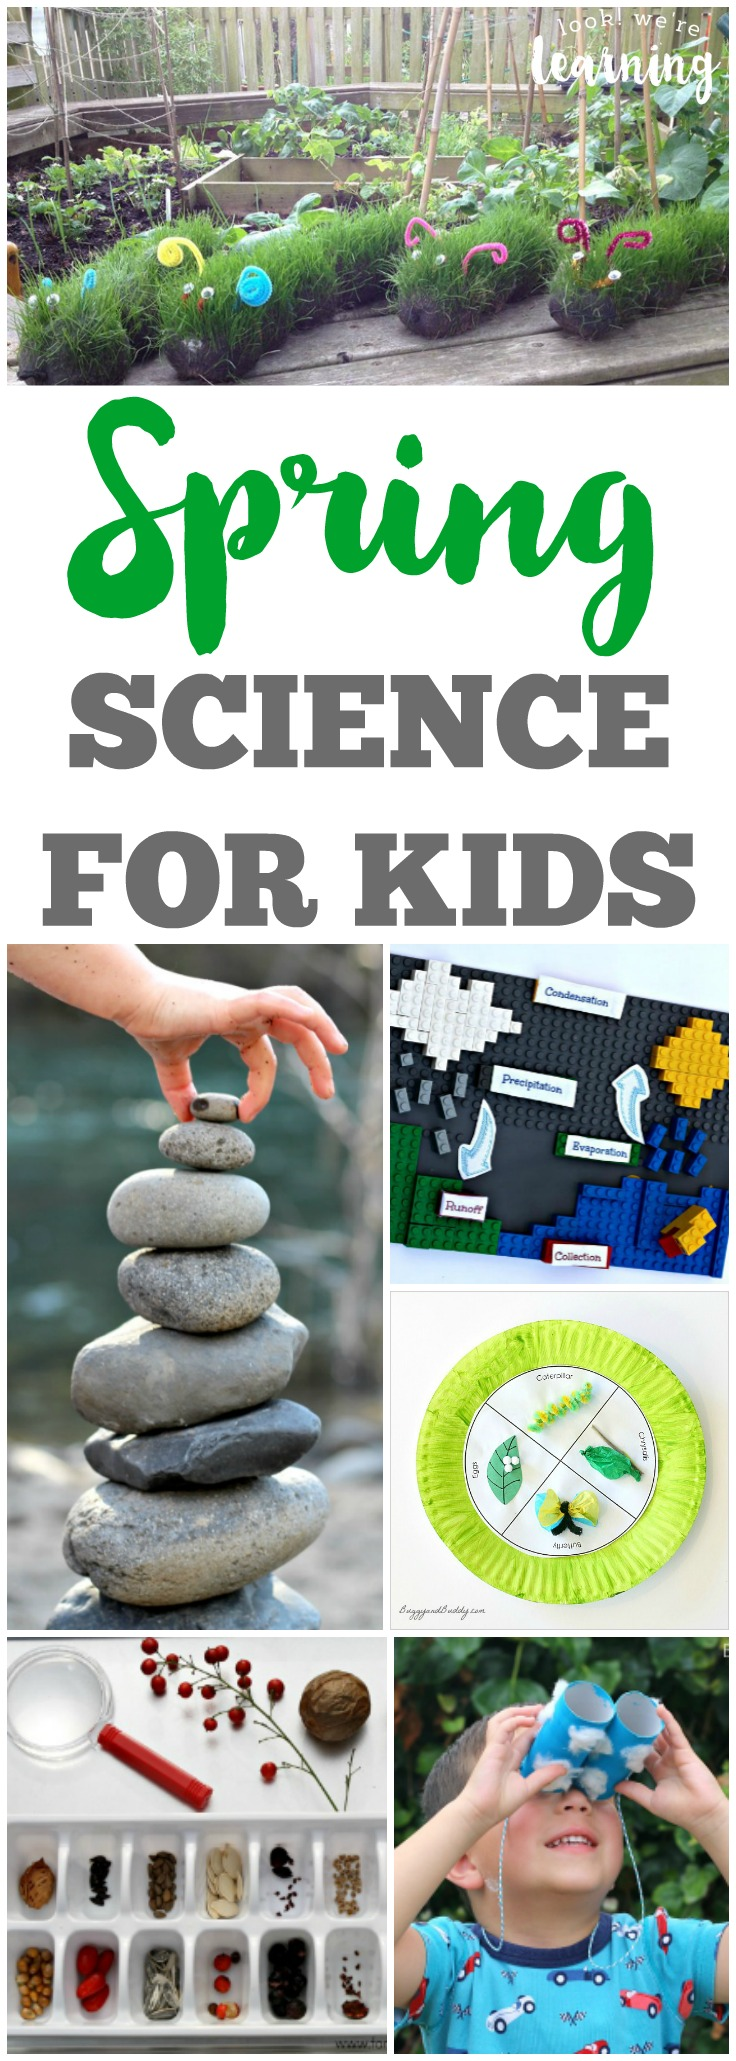 Learn about science with the little ones with these fun spring science ideas for kids!